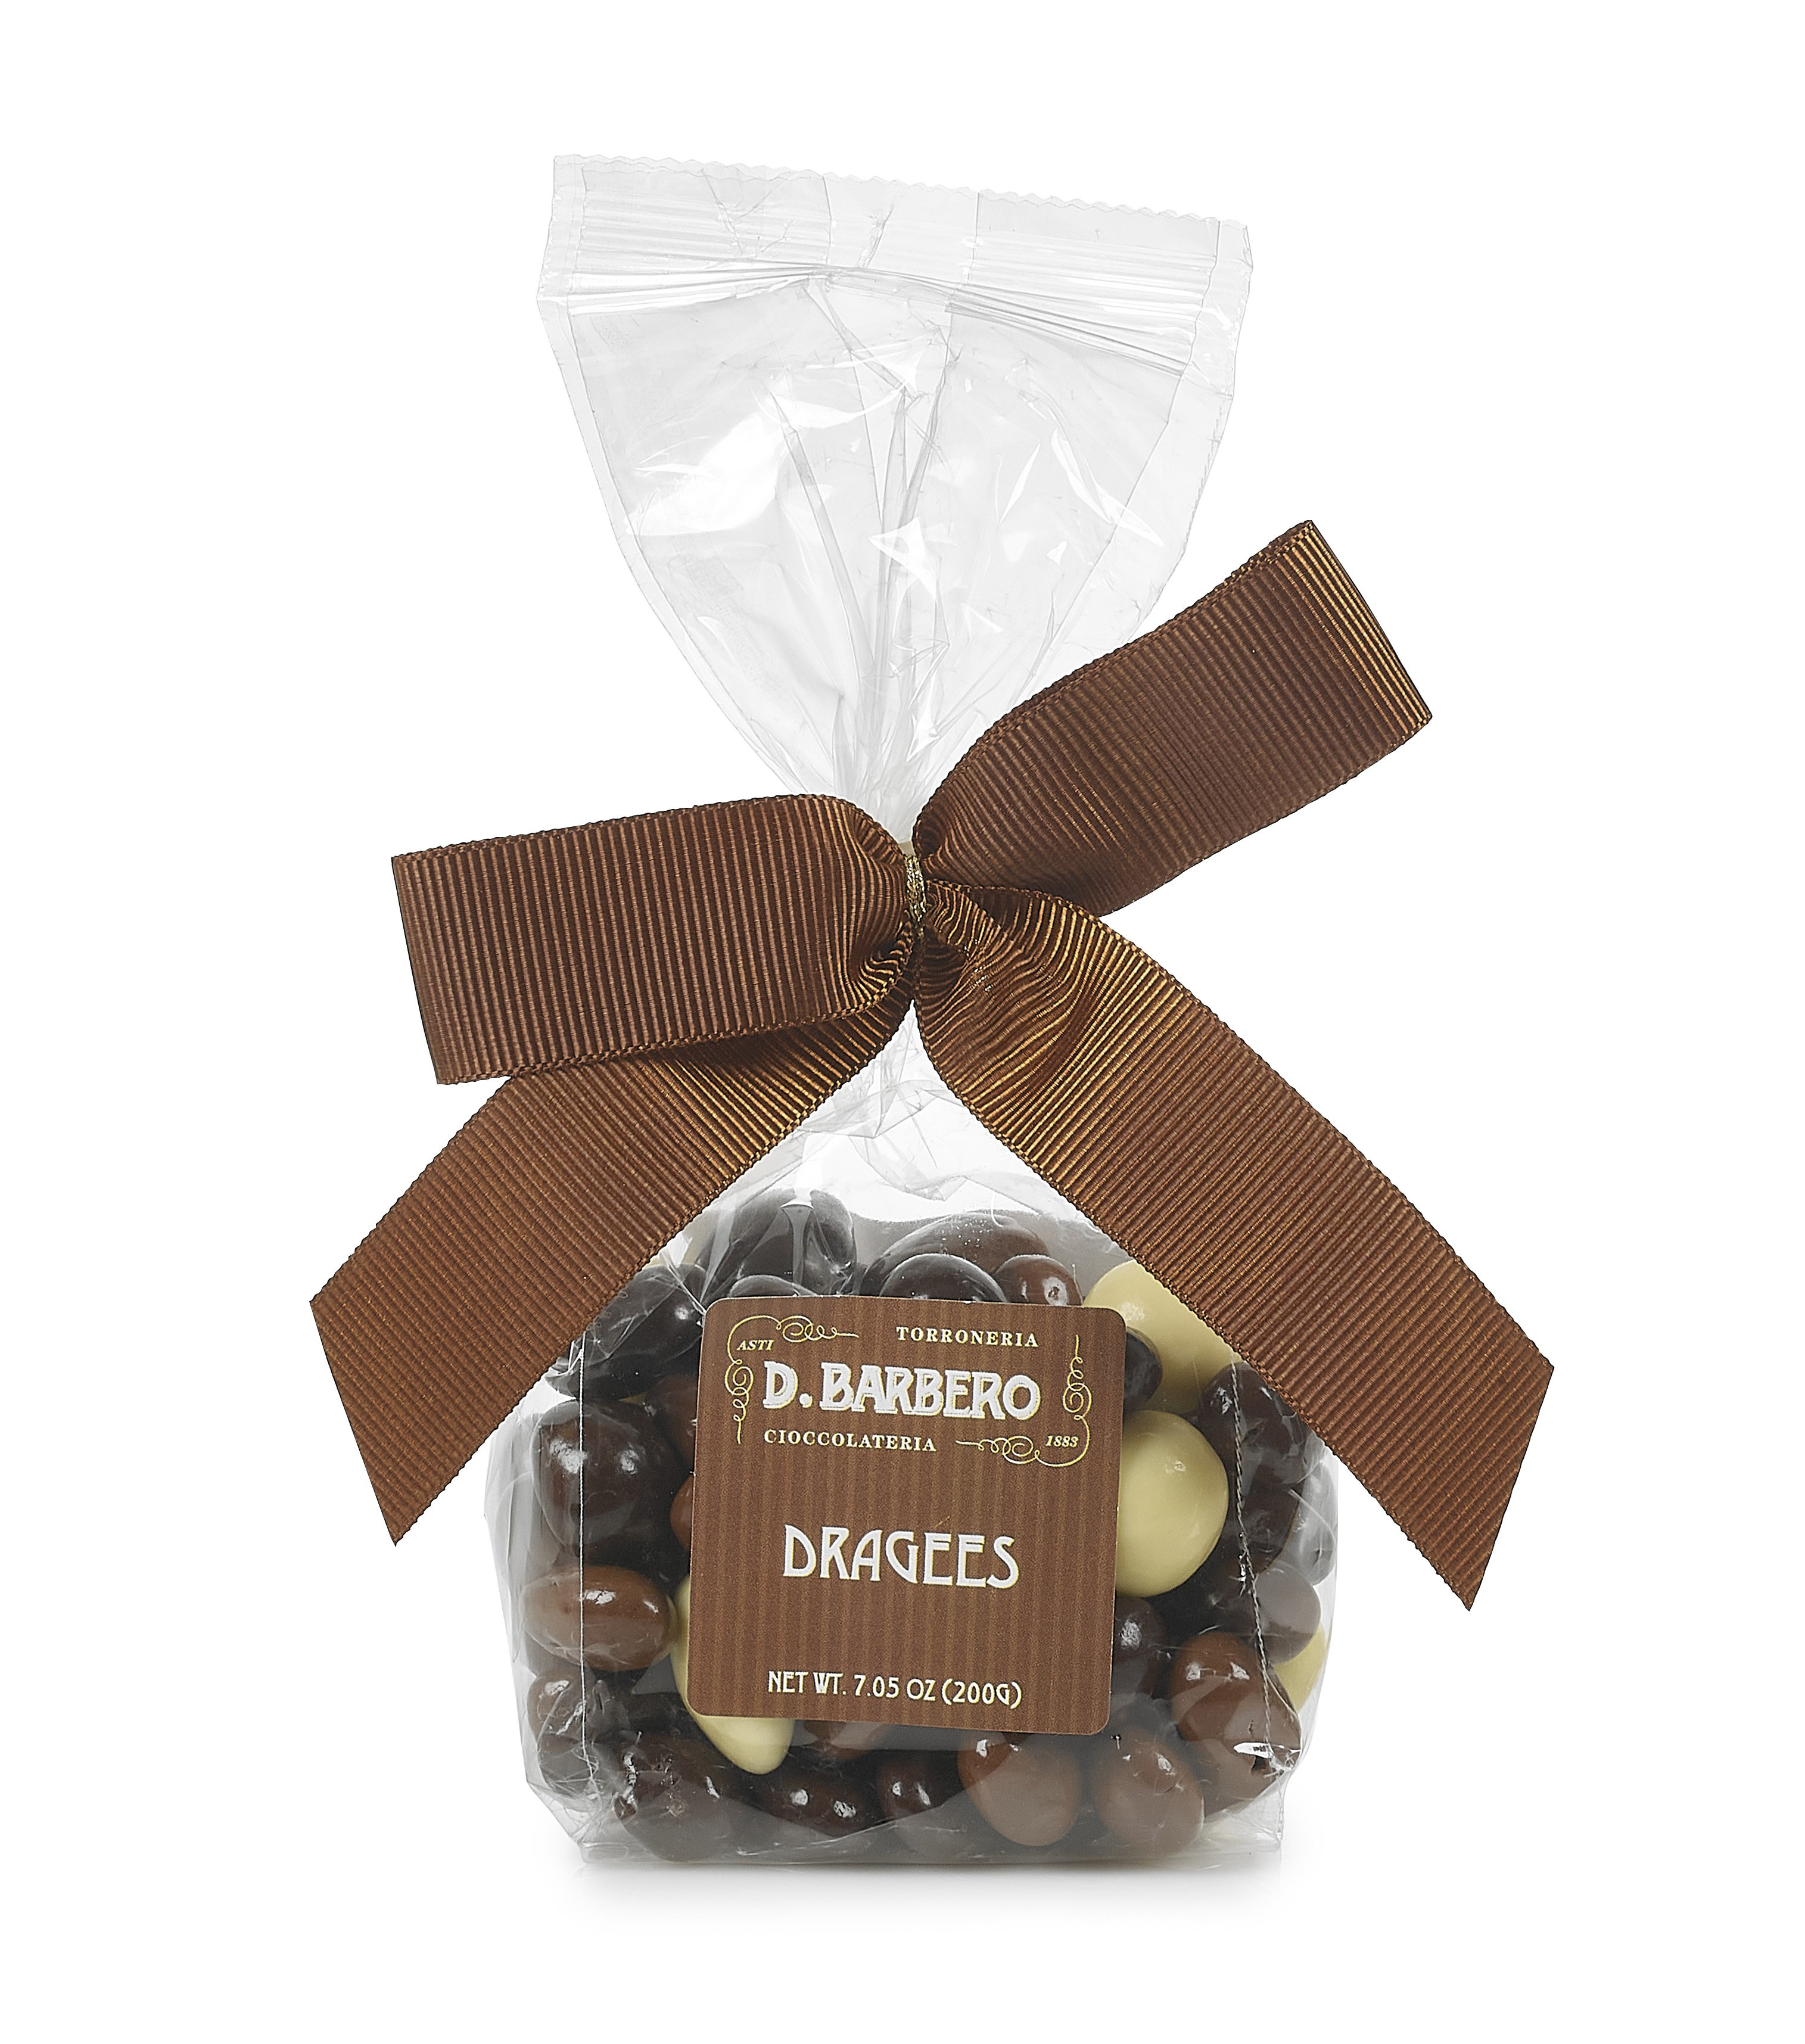 Chocolate Coated Dragees 200g by D. Barbero